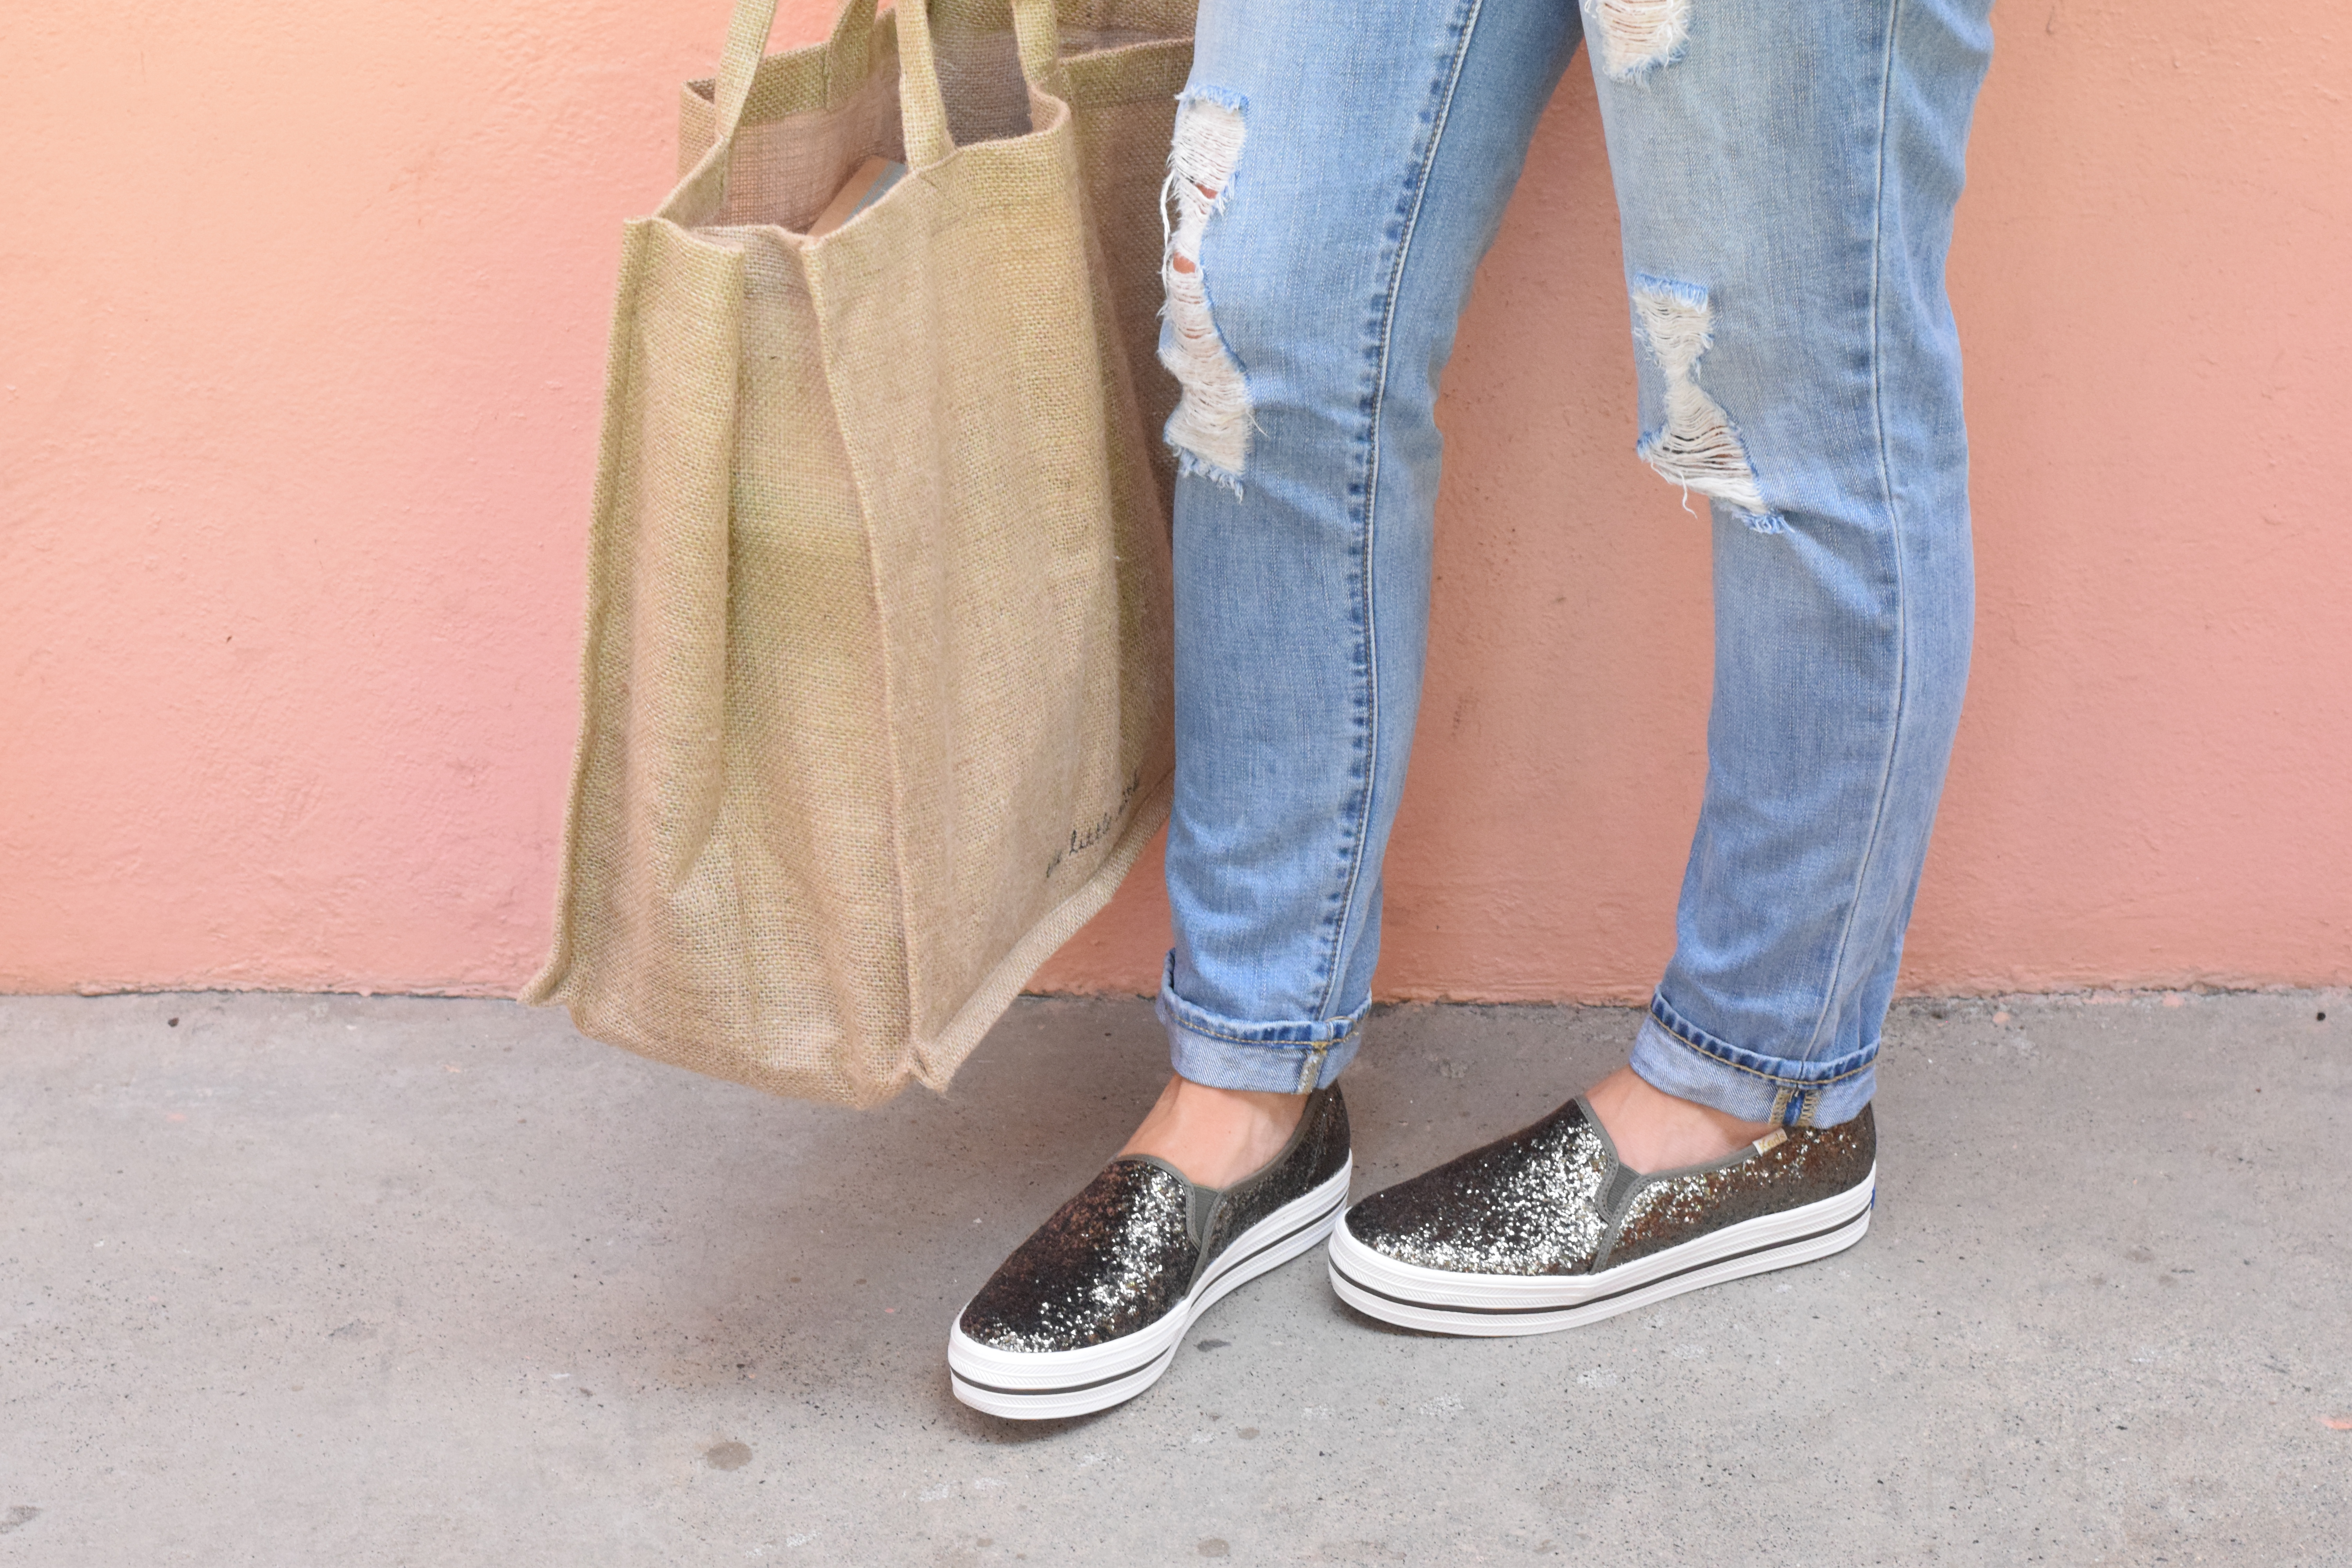 KEDS Triple Decker Glitter - The perfect slip-on sneaker to take you from the gym to errands, a casual day out and beyond! - kate spade new york x KEDS - Sparkle Slip On Sneaker - KEDS shoes - Style - Fashion - Communikait